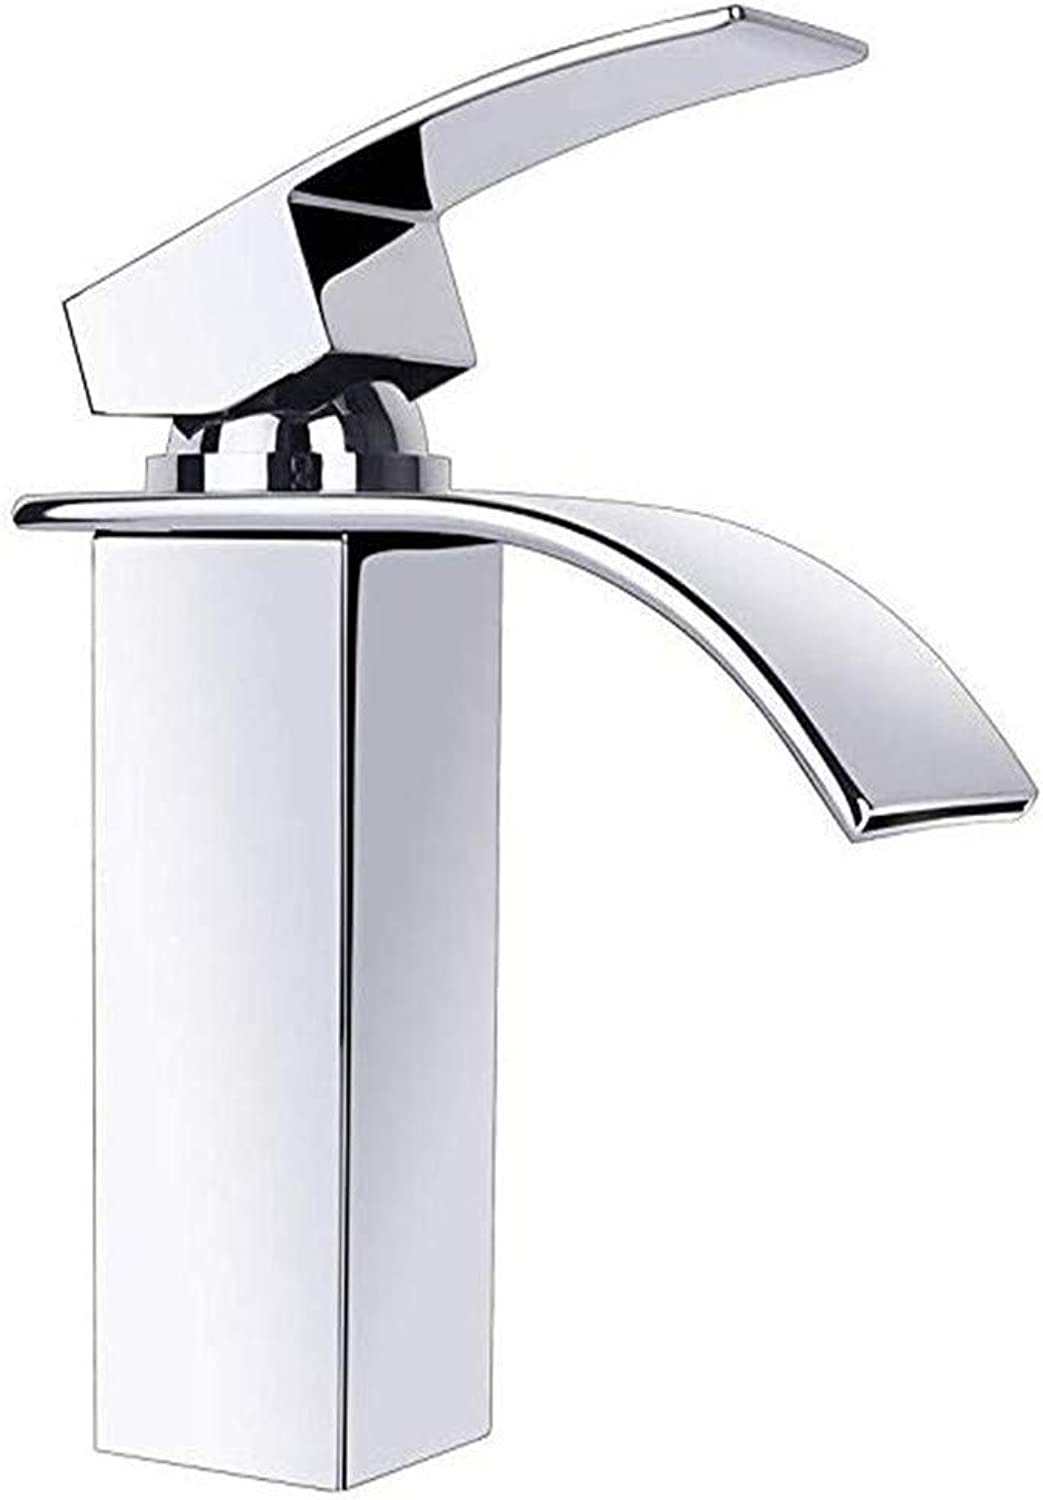 Oudan Faucet Basin Faucet Kitchen Faucetbathroom Sink Tapchrome Tap Waterfall Bathroom Mixer Tap Wash Basin Bathroom Tap Waterfall Tap Single-Lever Mixer Tap (color   -, Size   -)